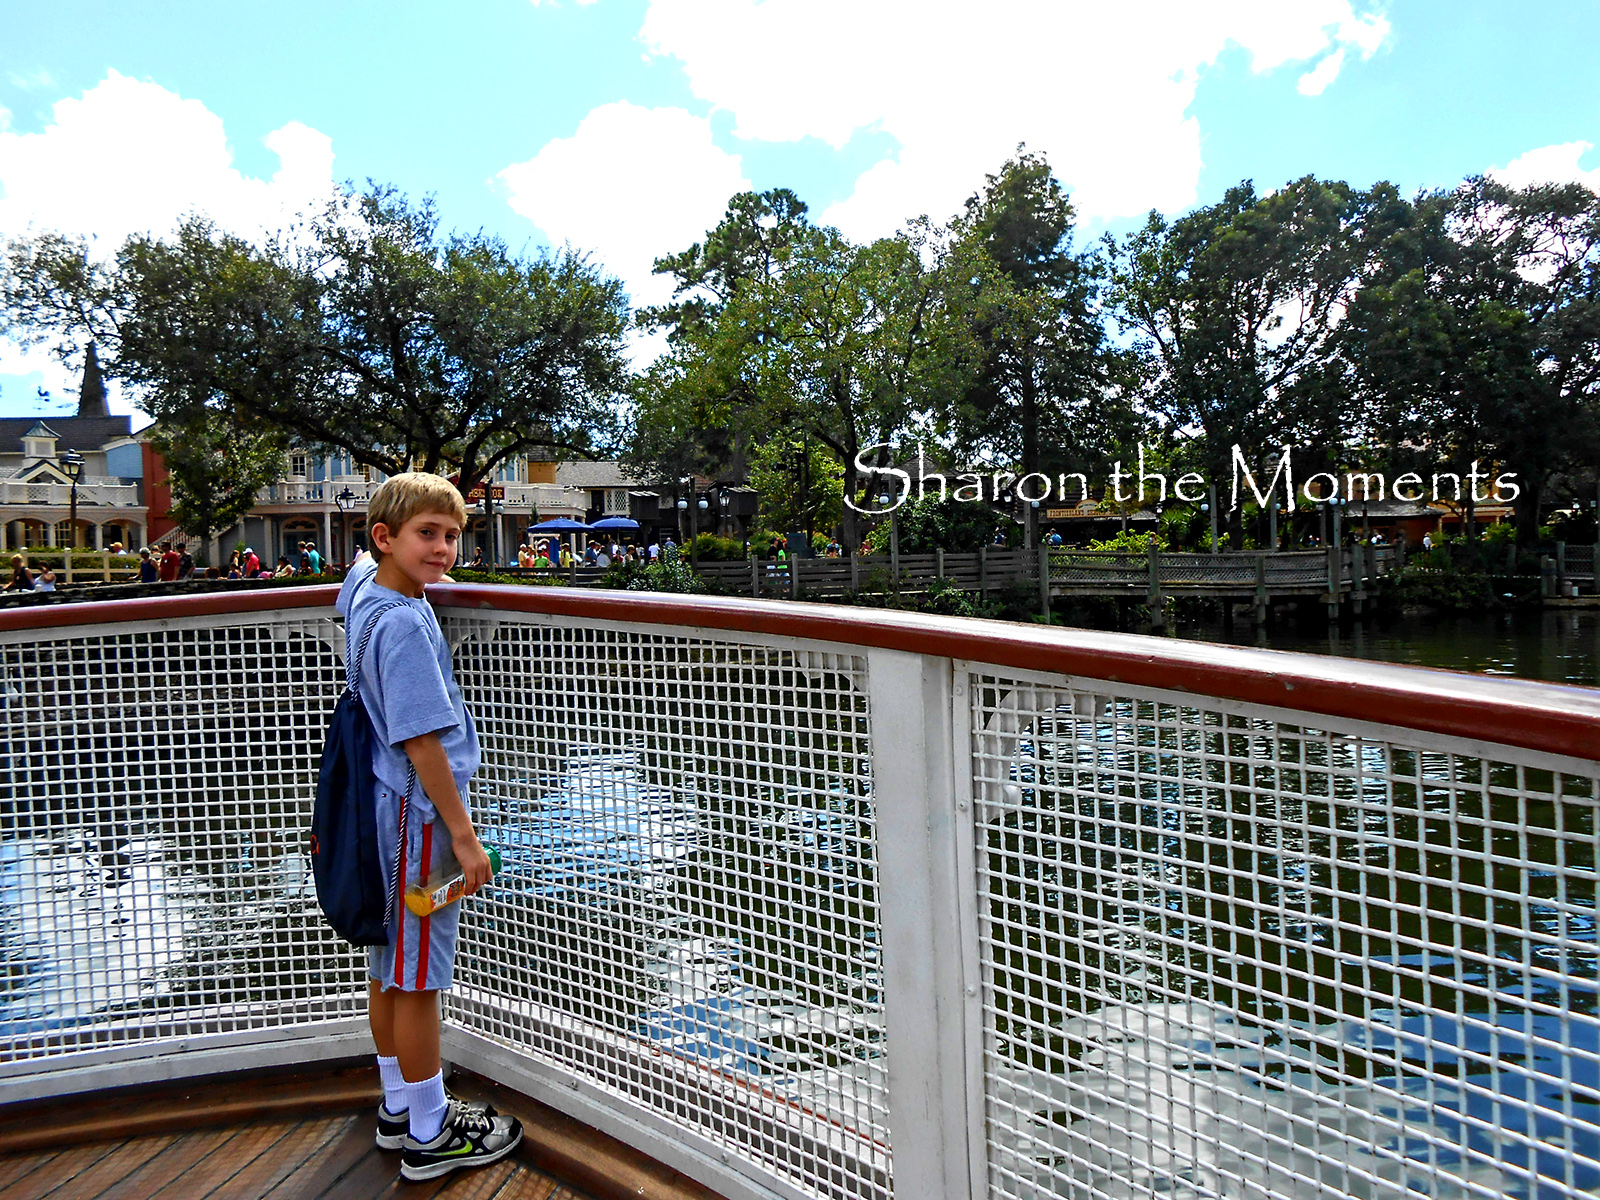 Our October Visit to Walt Disney World Magic Kingdom|Sharon the Moments Blog